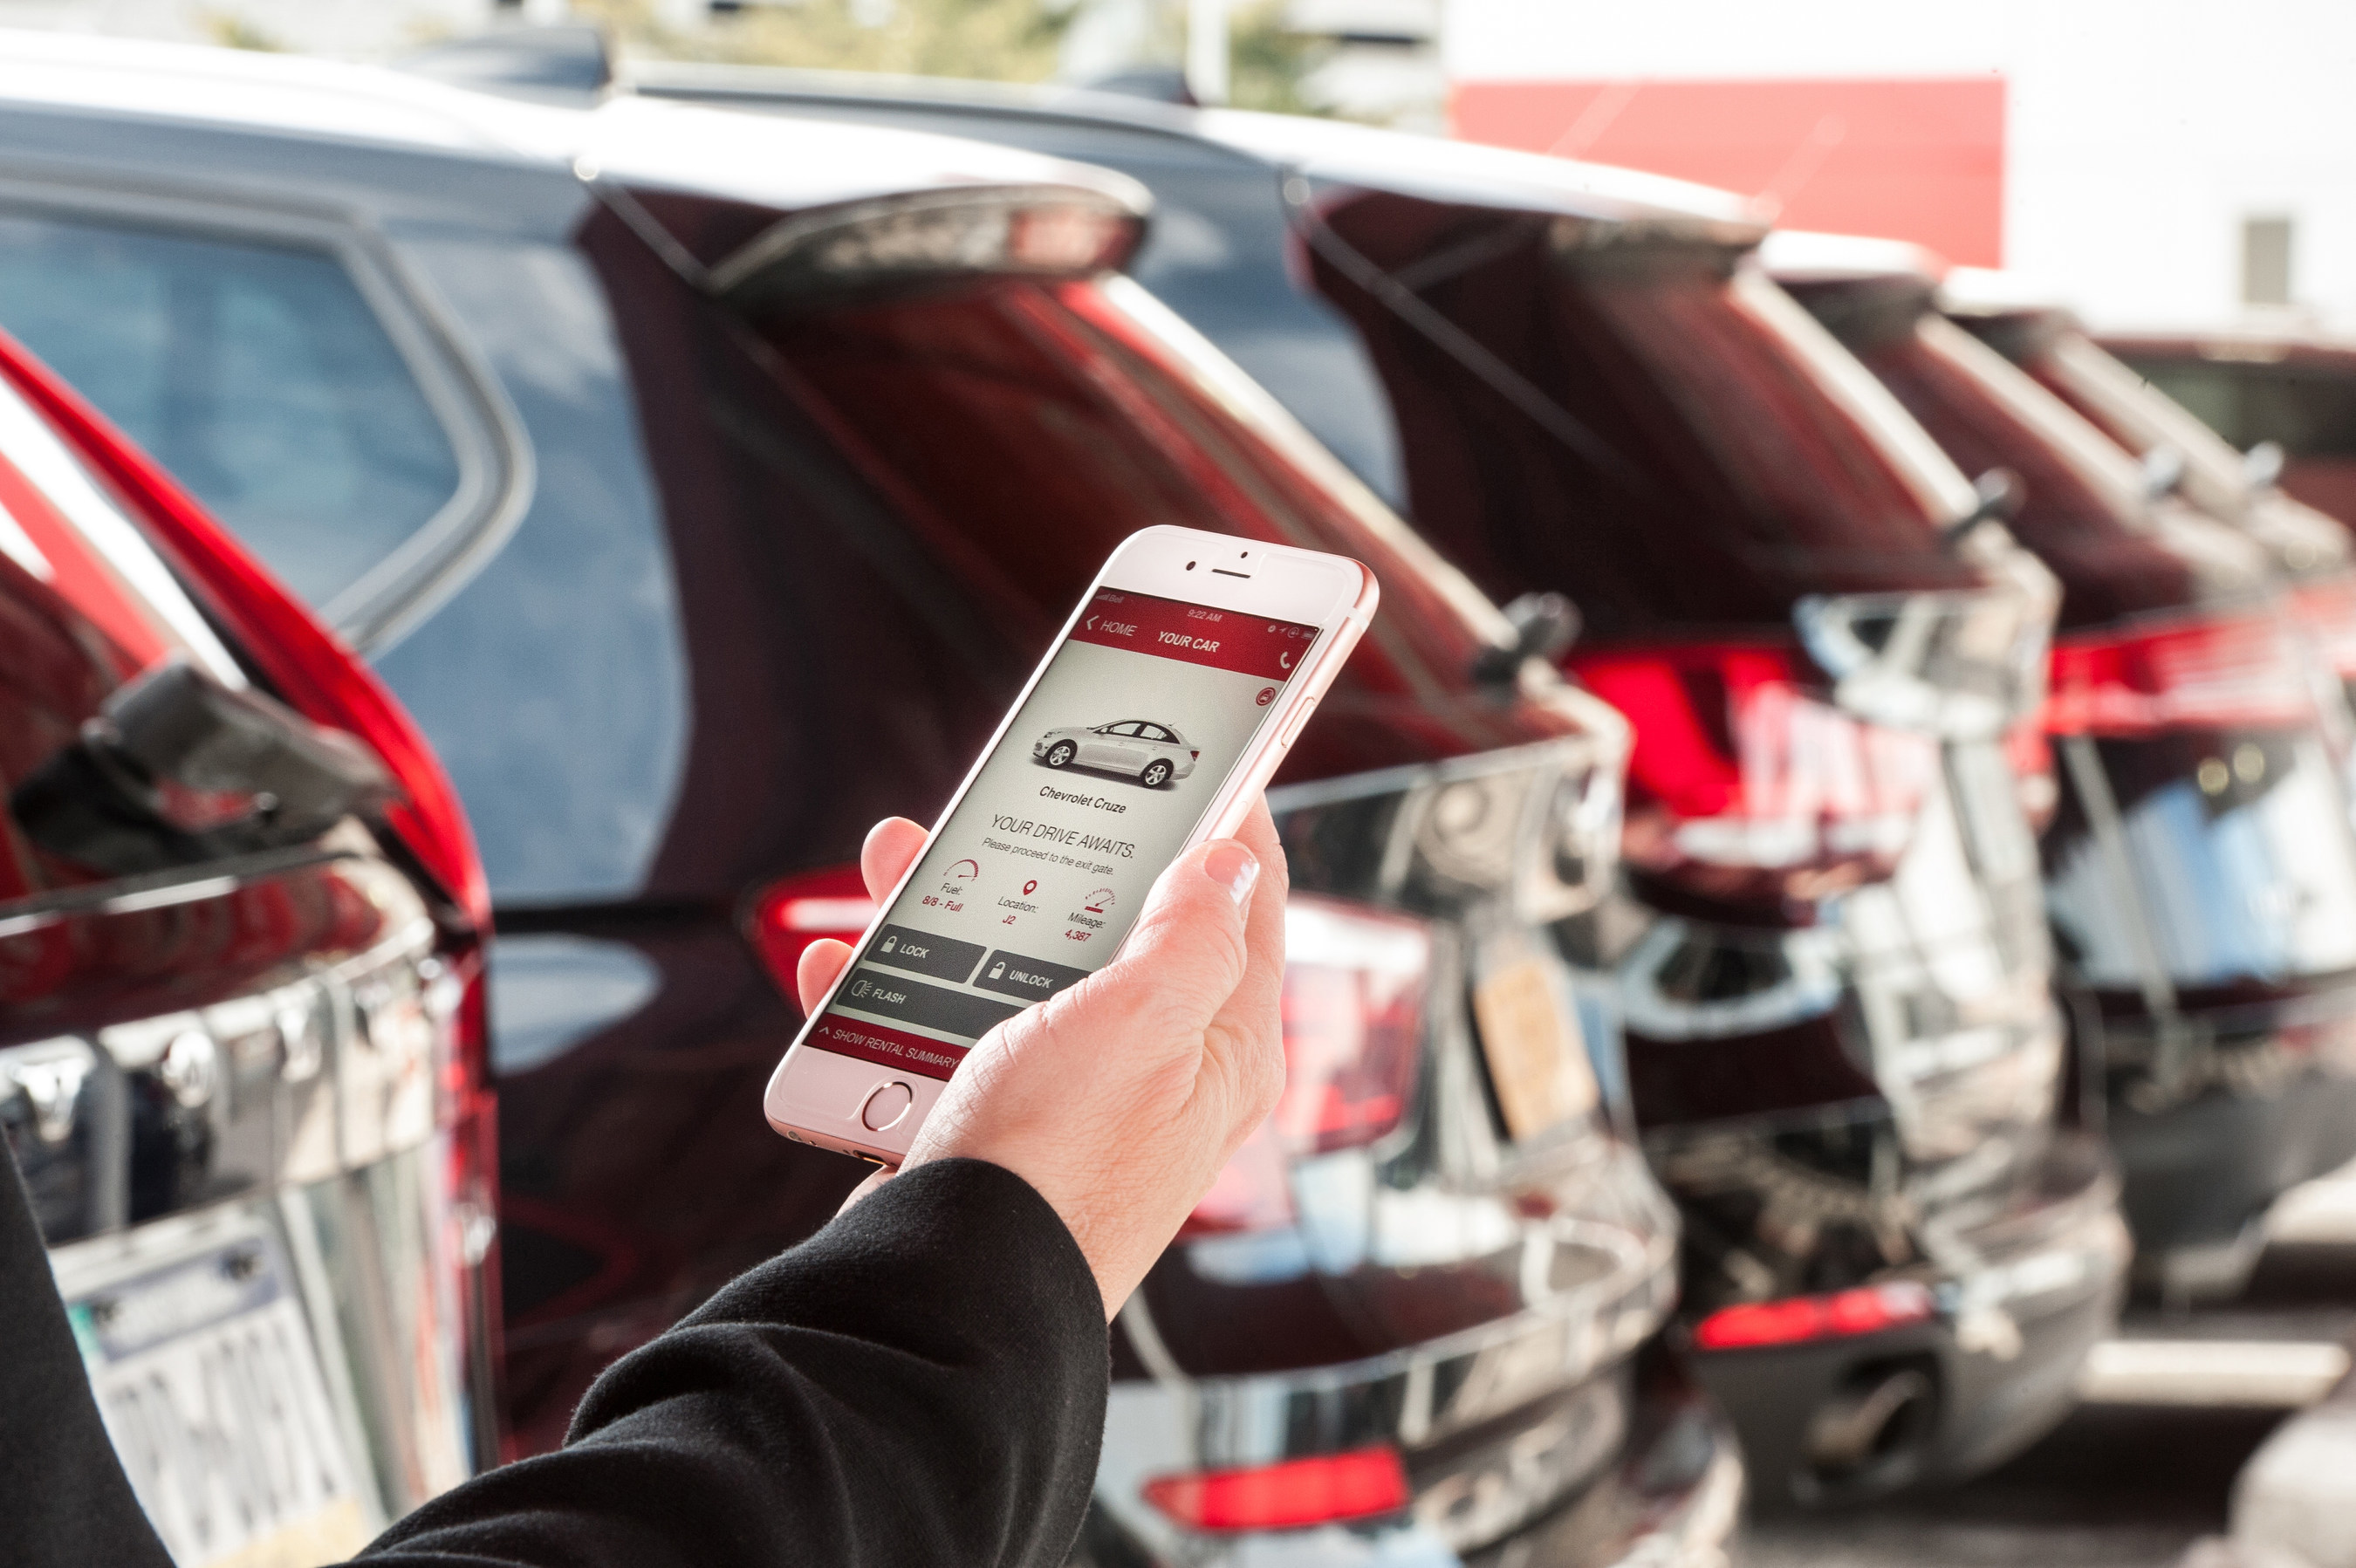 Avis Transforms Car Rental To Give Travelers Complete Control Of Their Experience Via Smartphone